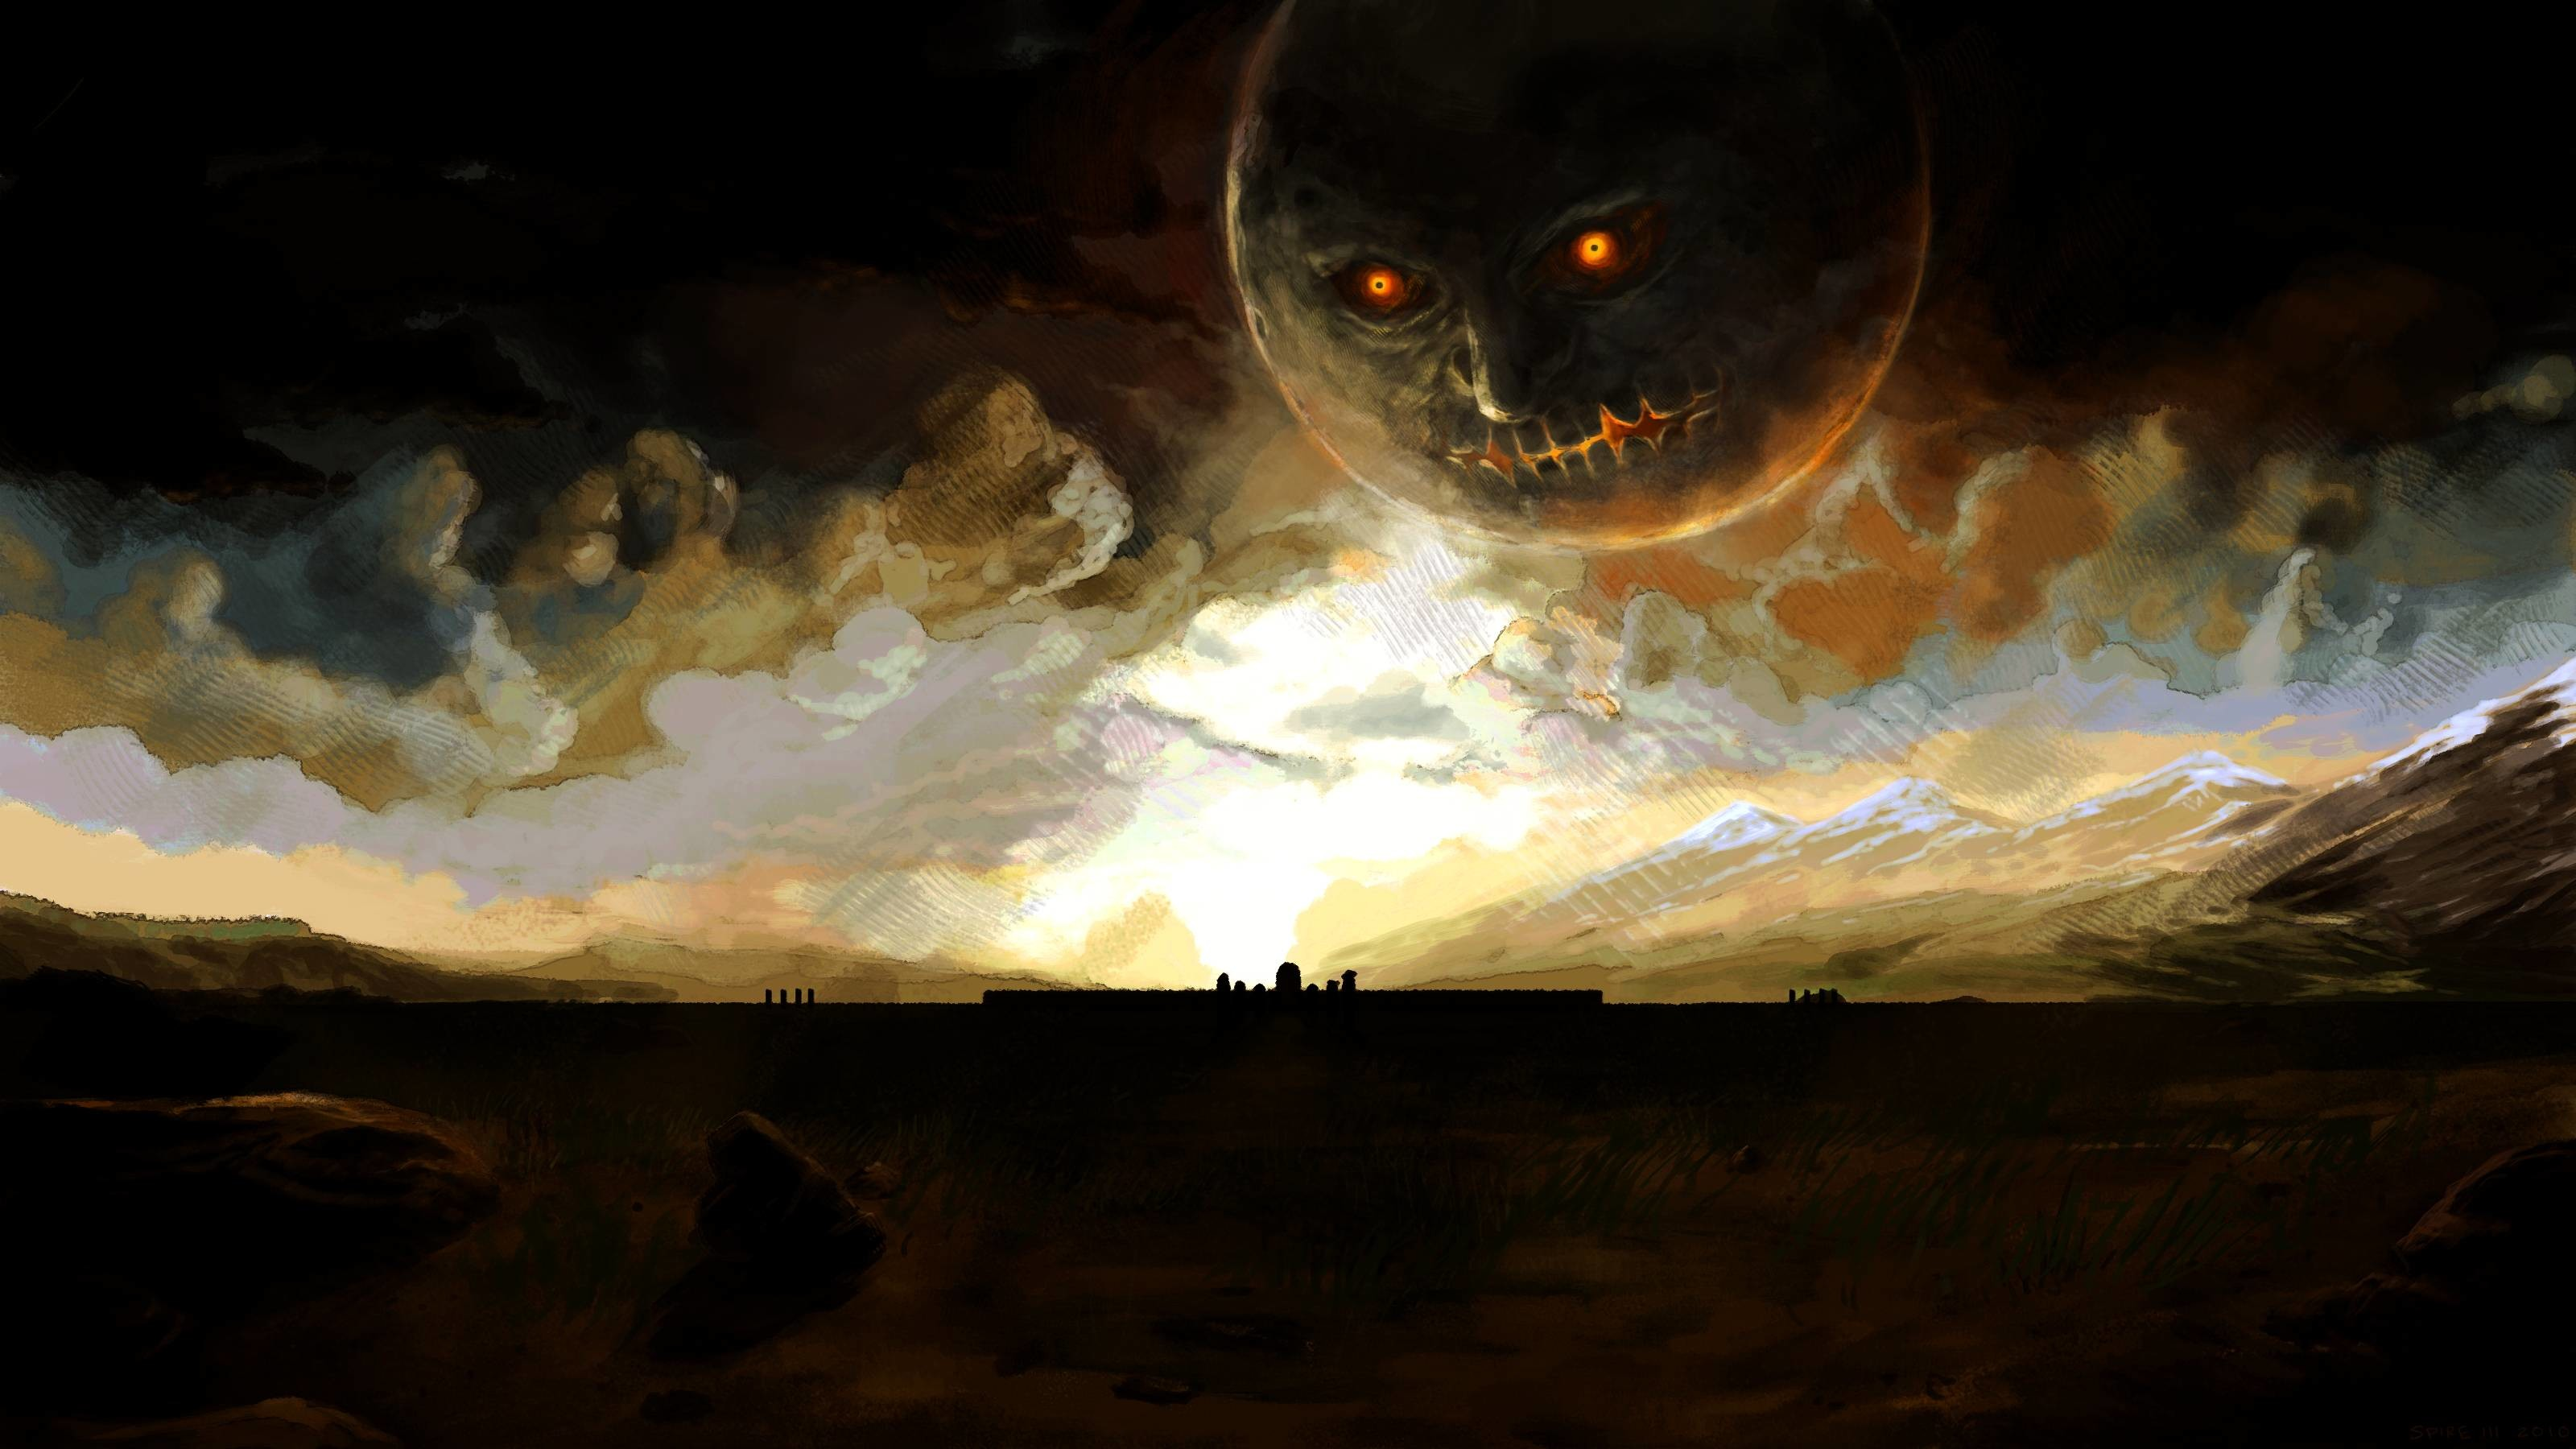 An awesome Majora's Mask wallpaper I found …